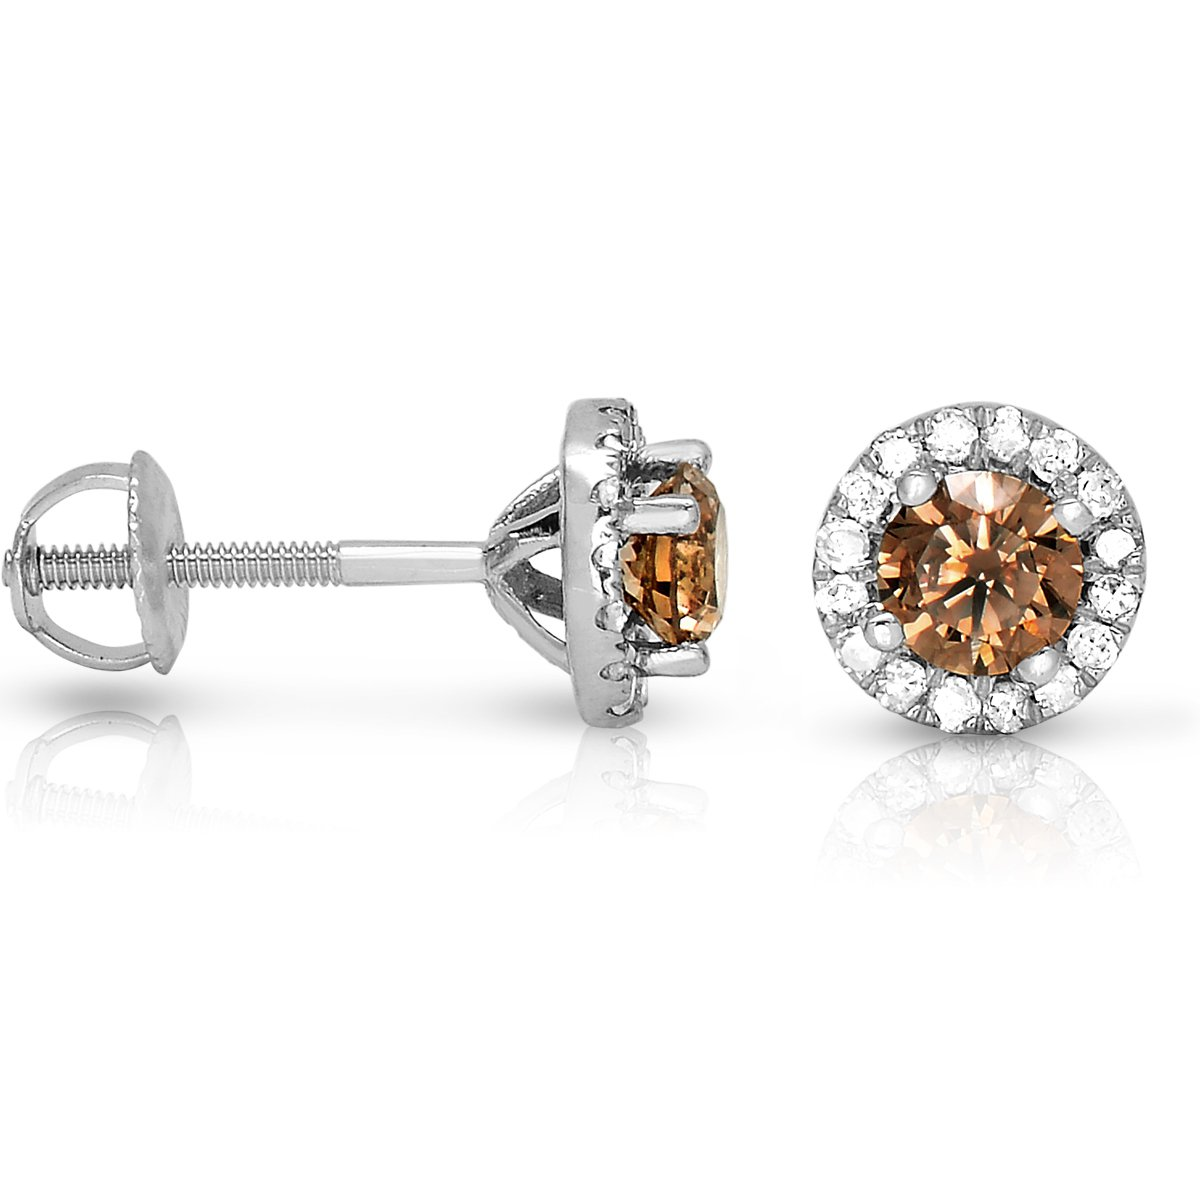 2 ct Chocolate Brown Round Diamond Halo Cluster Stud Earrings 14k White Gold (E1295-200WBR)